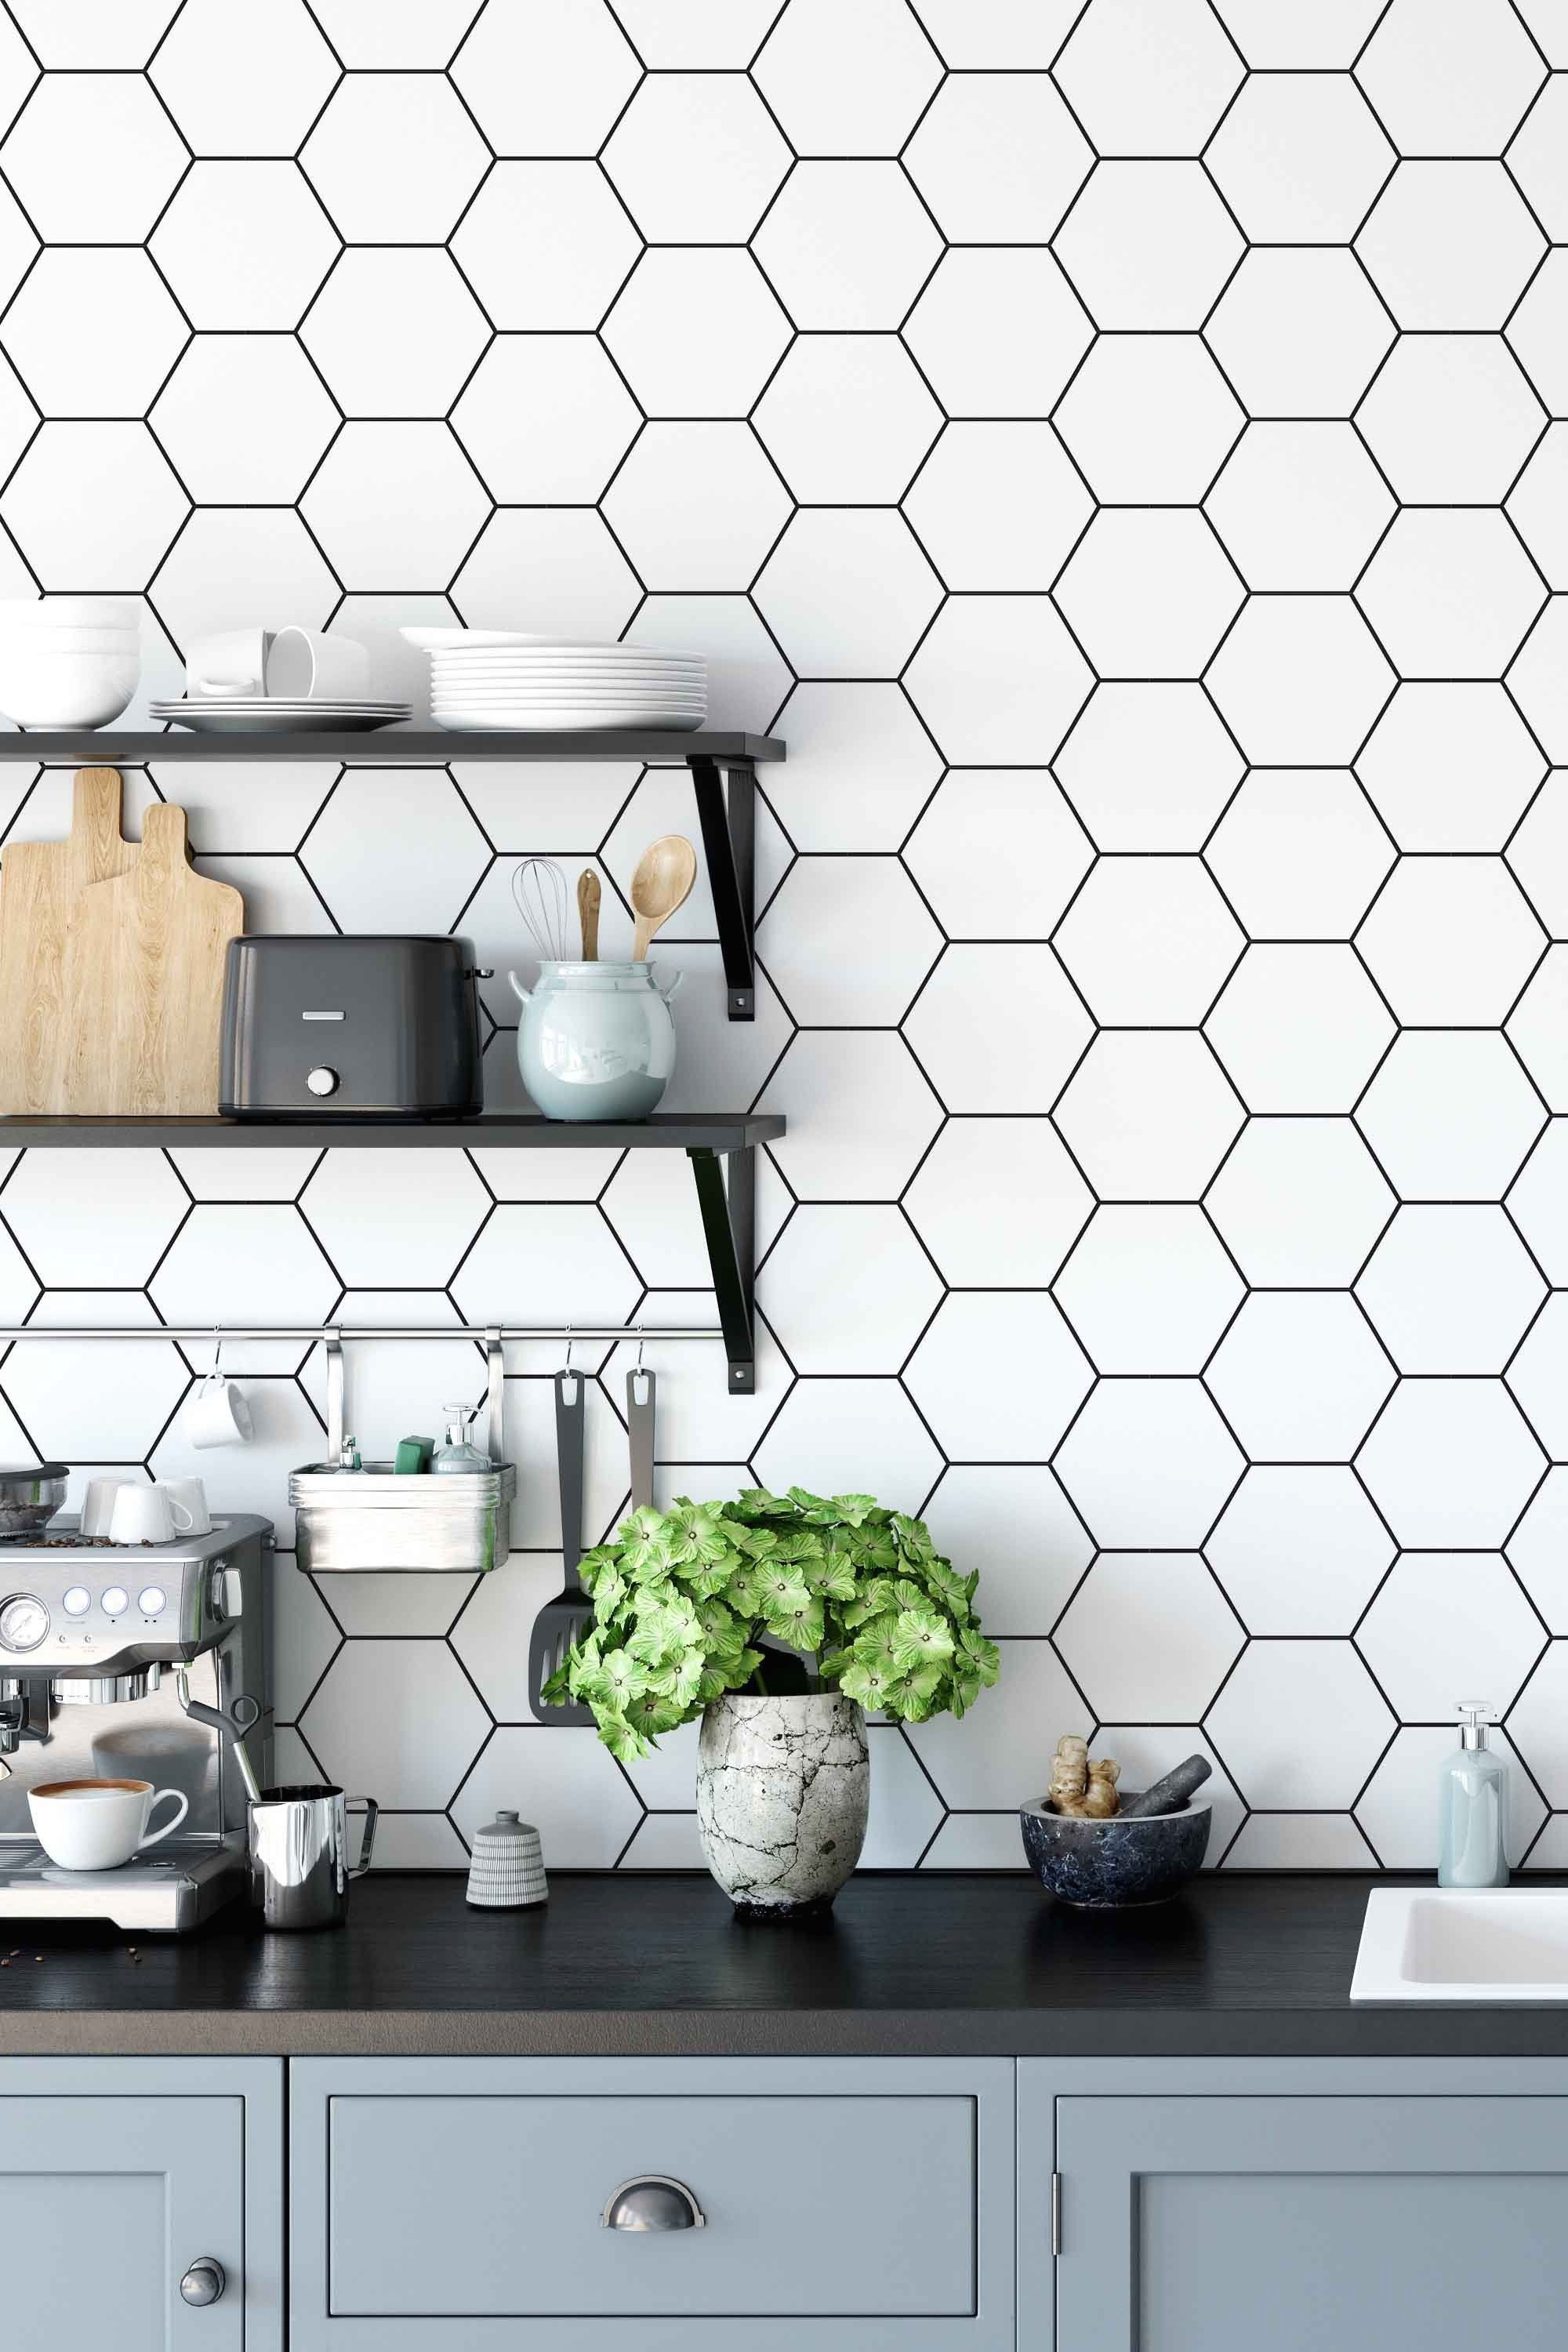 Peel And Stick Wallpaper With Honeycomb Pattern Black And White Print Wall Decal Minimal Patter Wallpaper Backsplash Kitchen Kitchen Wallpaper Honeycomb Tile